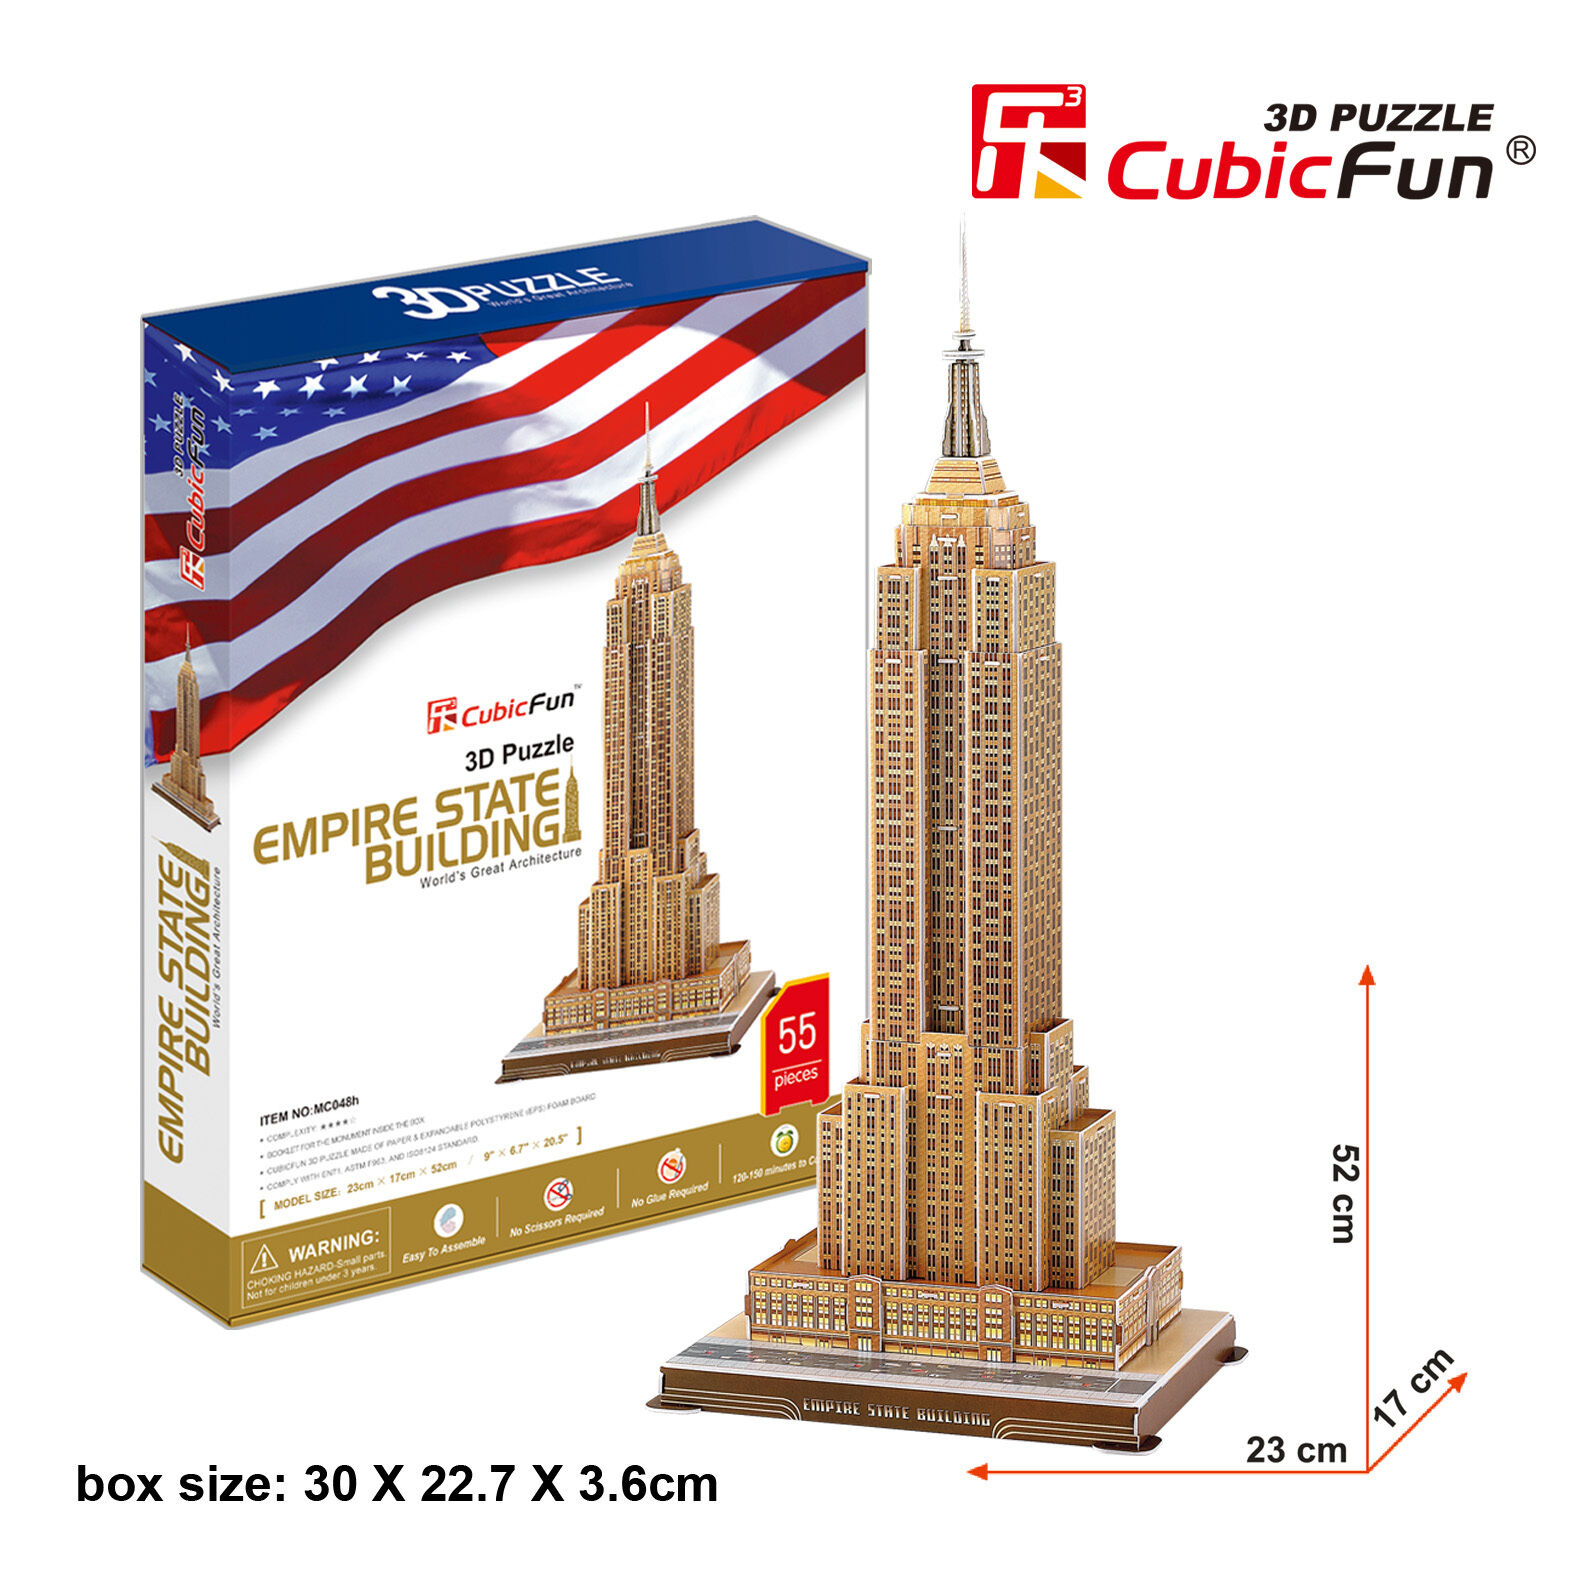 Details about New Empire State Building New York USA 3D Model Jigsaw Puzzle  55 Pieces MC048H